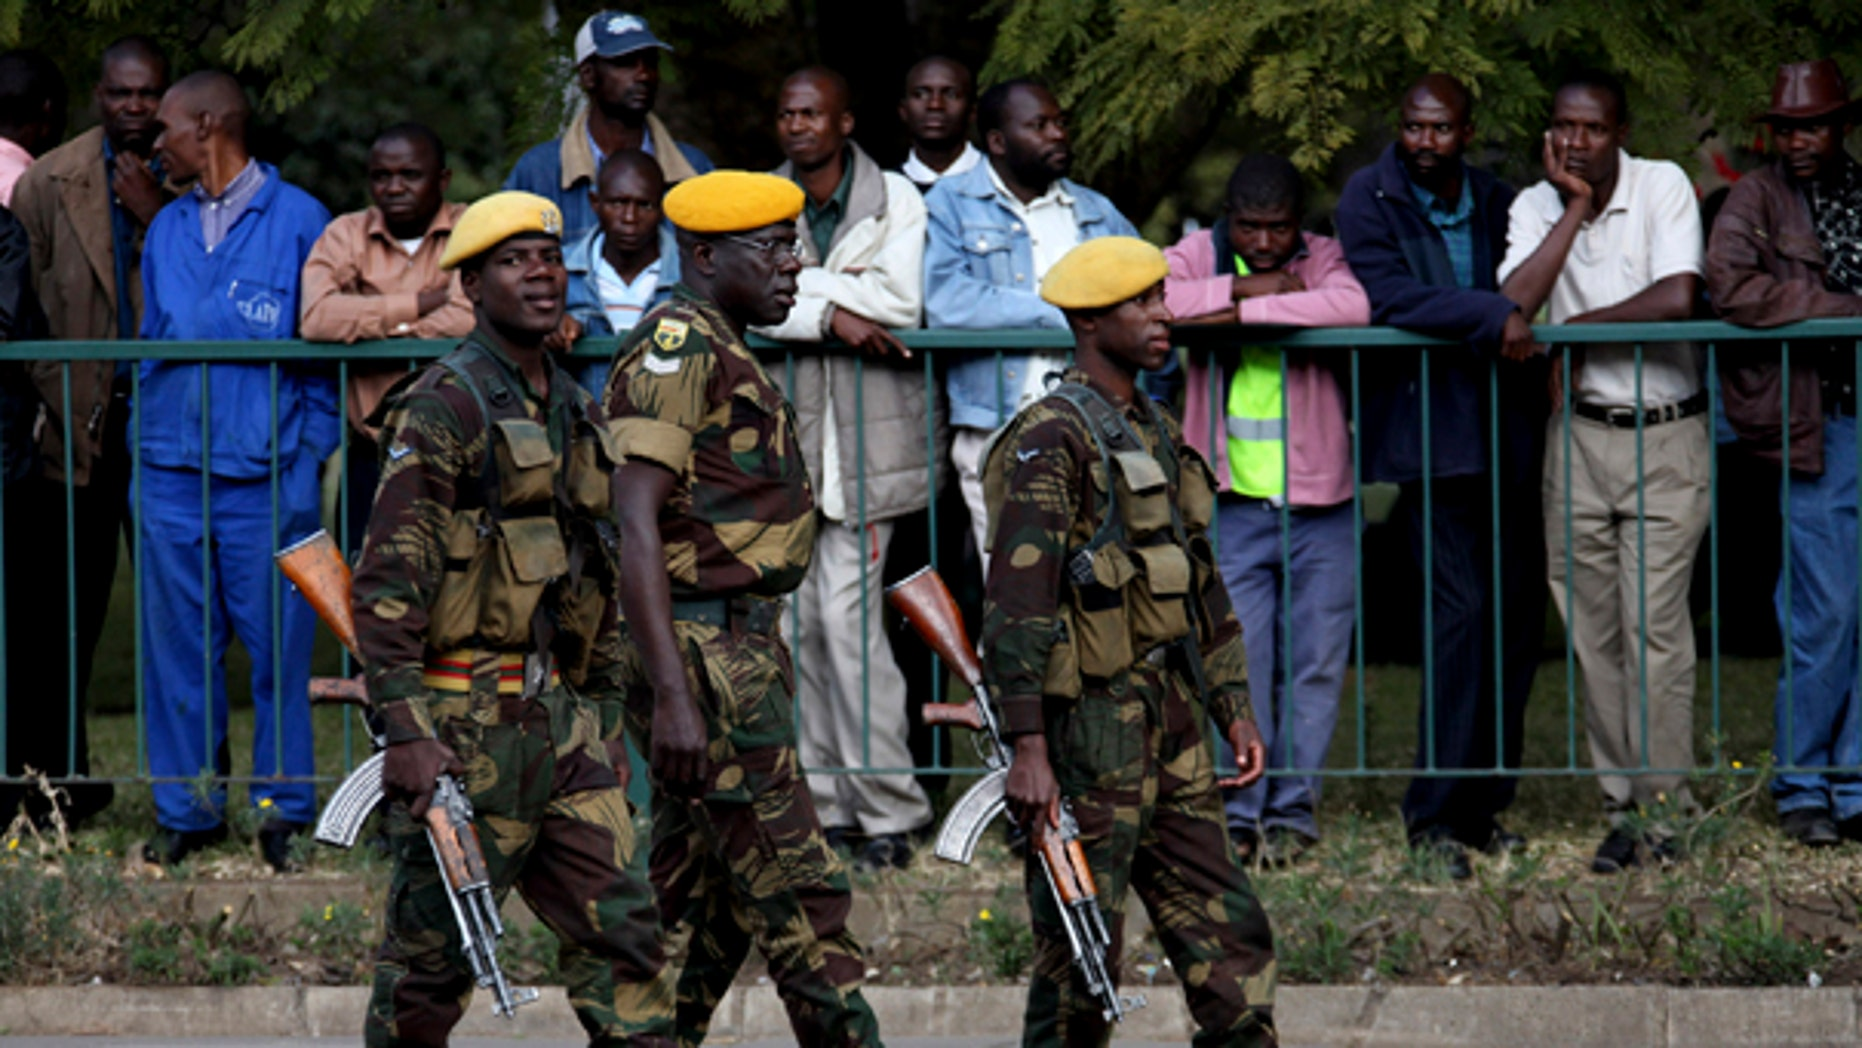 July 14: Members of the Zimbabwe National Army take up positions following the arrival of President Robert Mugabe, for the presentation of the mid term monetary review in Harare. (AP)